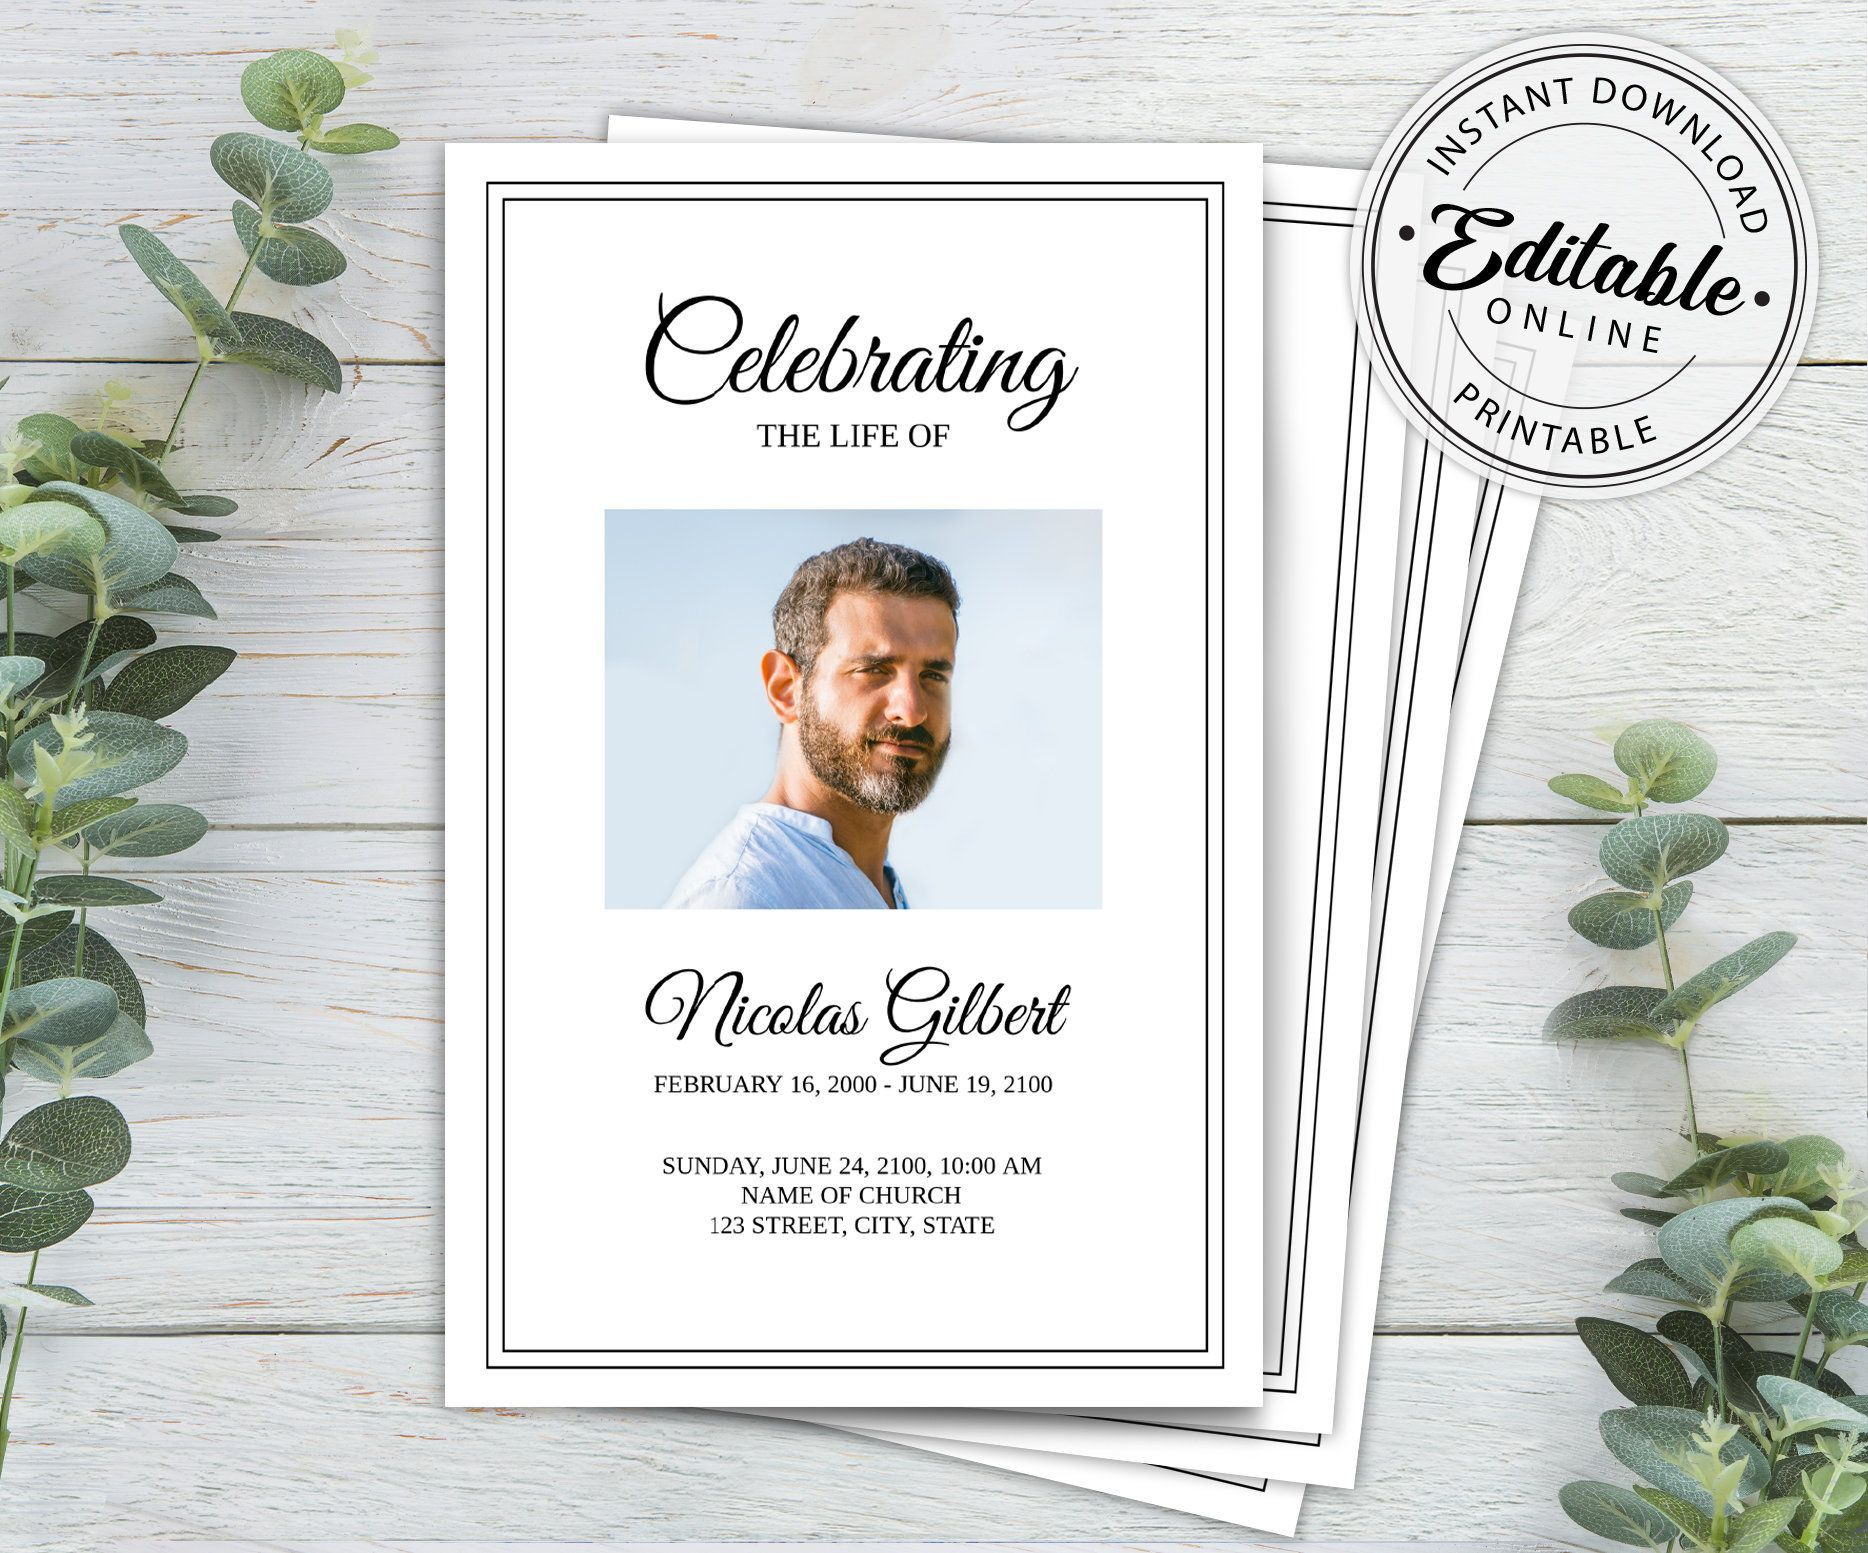 002 Wondrou Celebration Of Life Template Highest Clarity  Powerpoint Program Download Announcement FreeFull